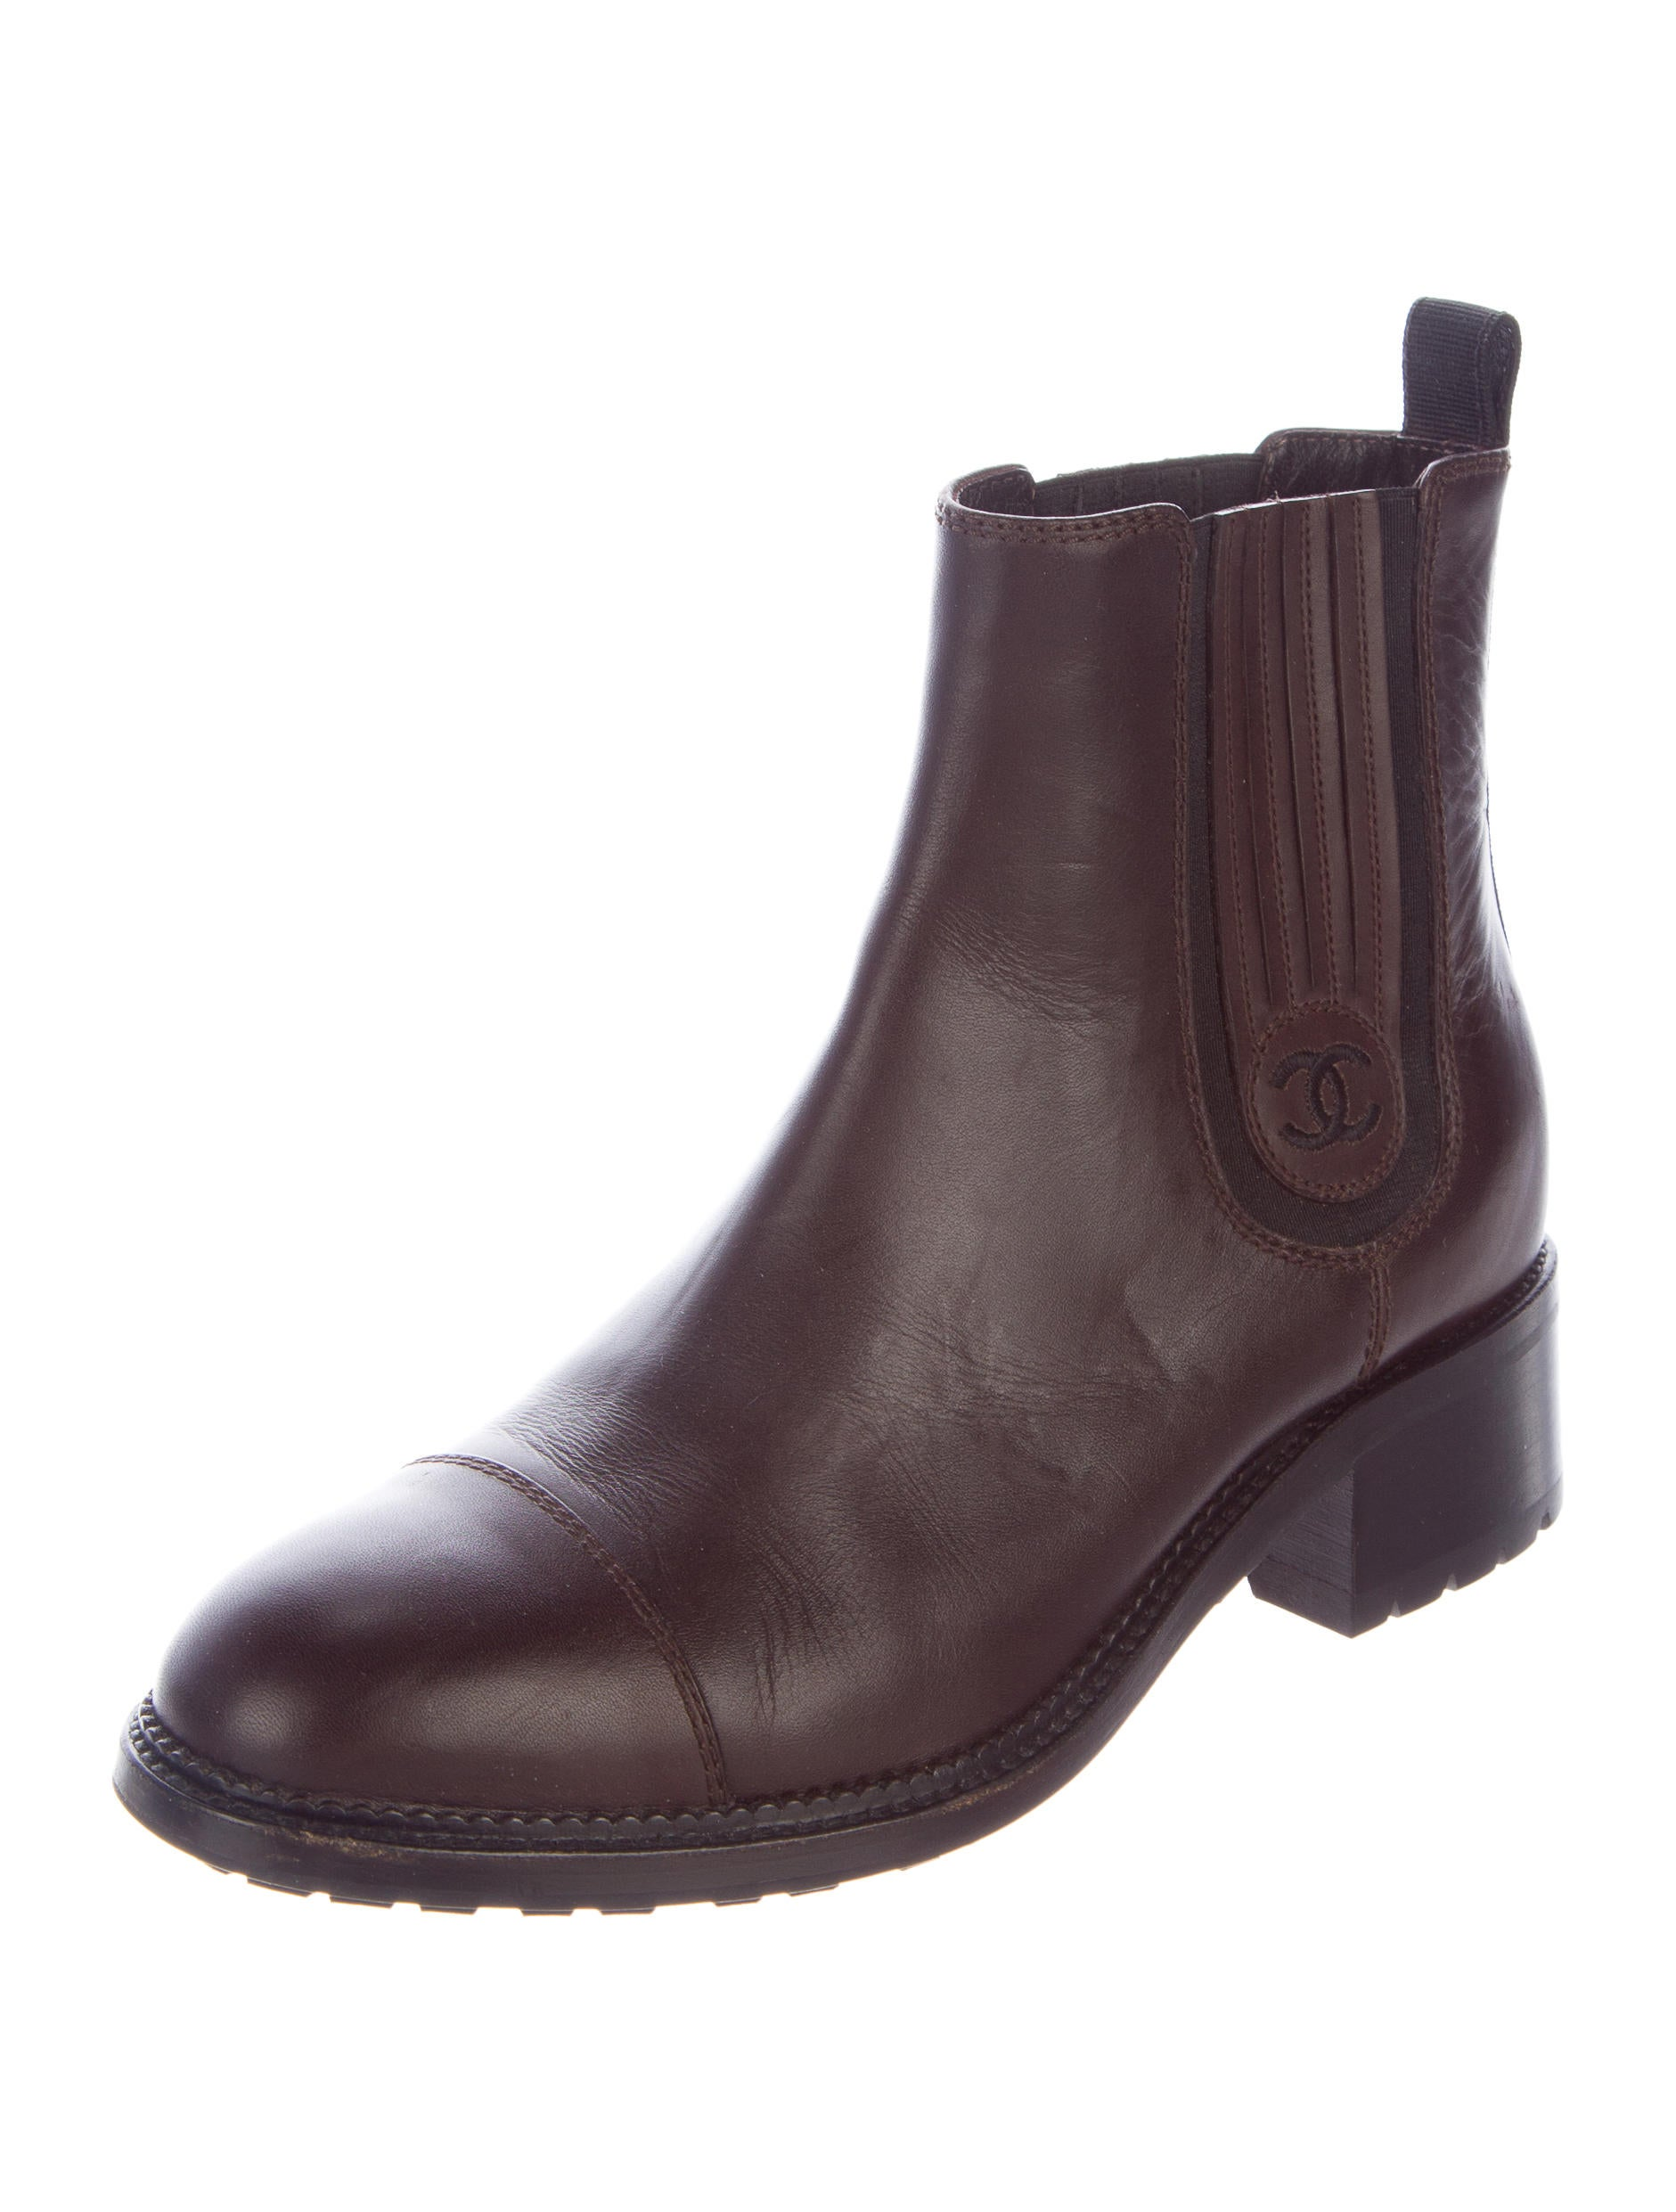 Find great deals on eBay for chelsea ankle boot. Shop with confidence.